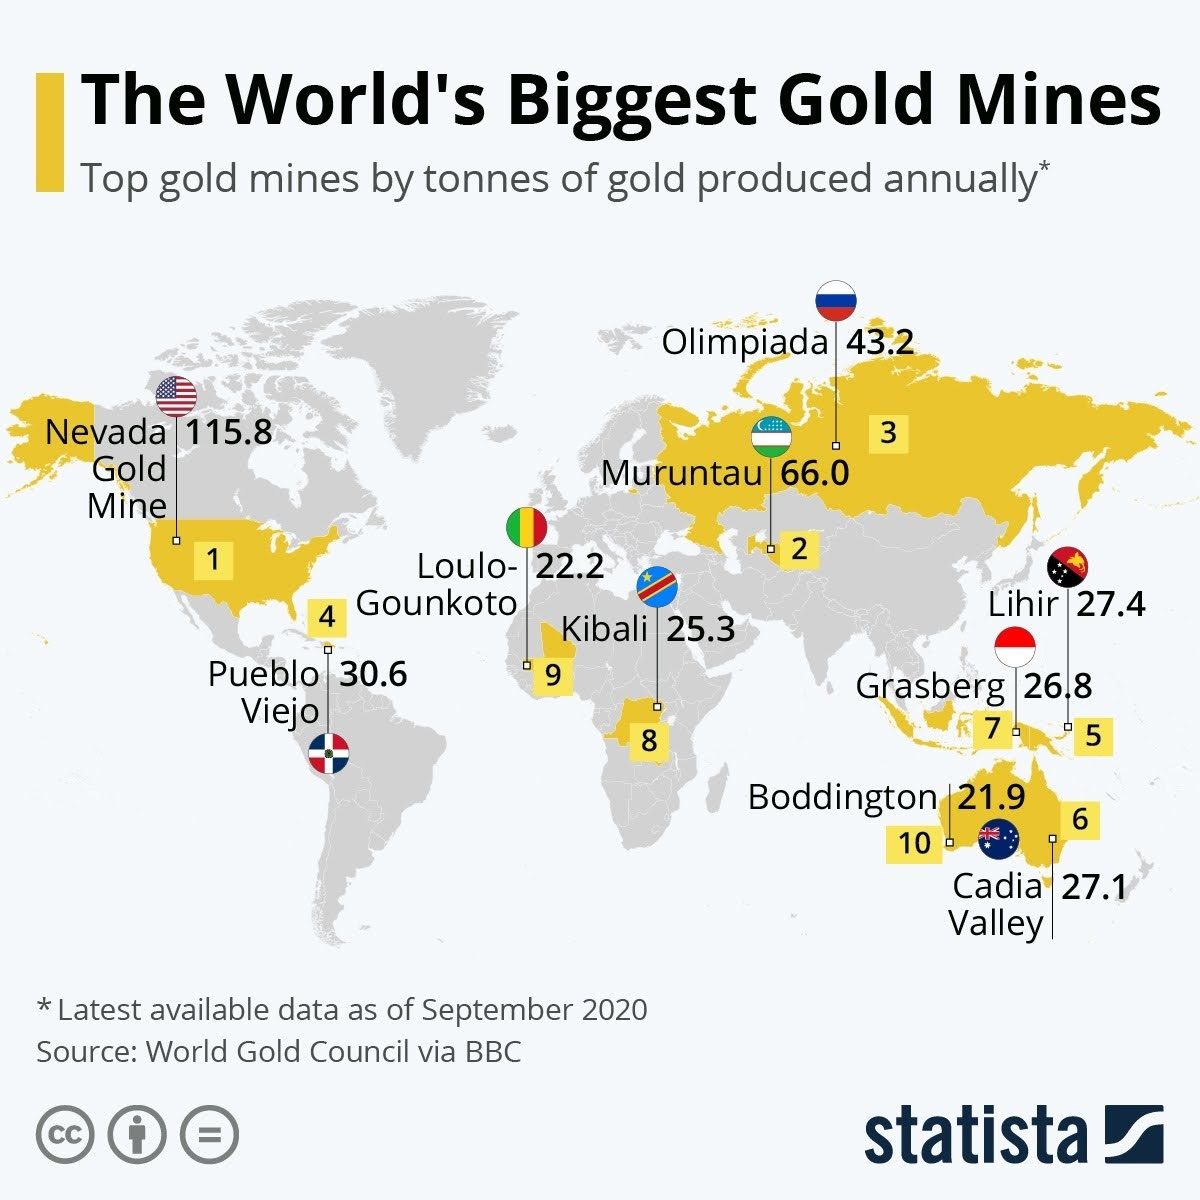 the-worlds-biggest-gold-mines-infographic